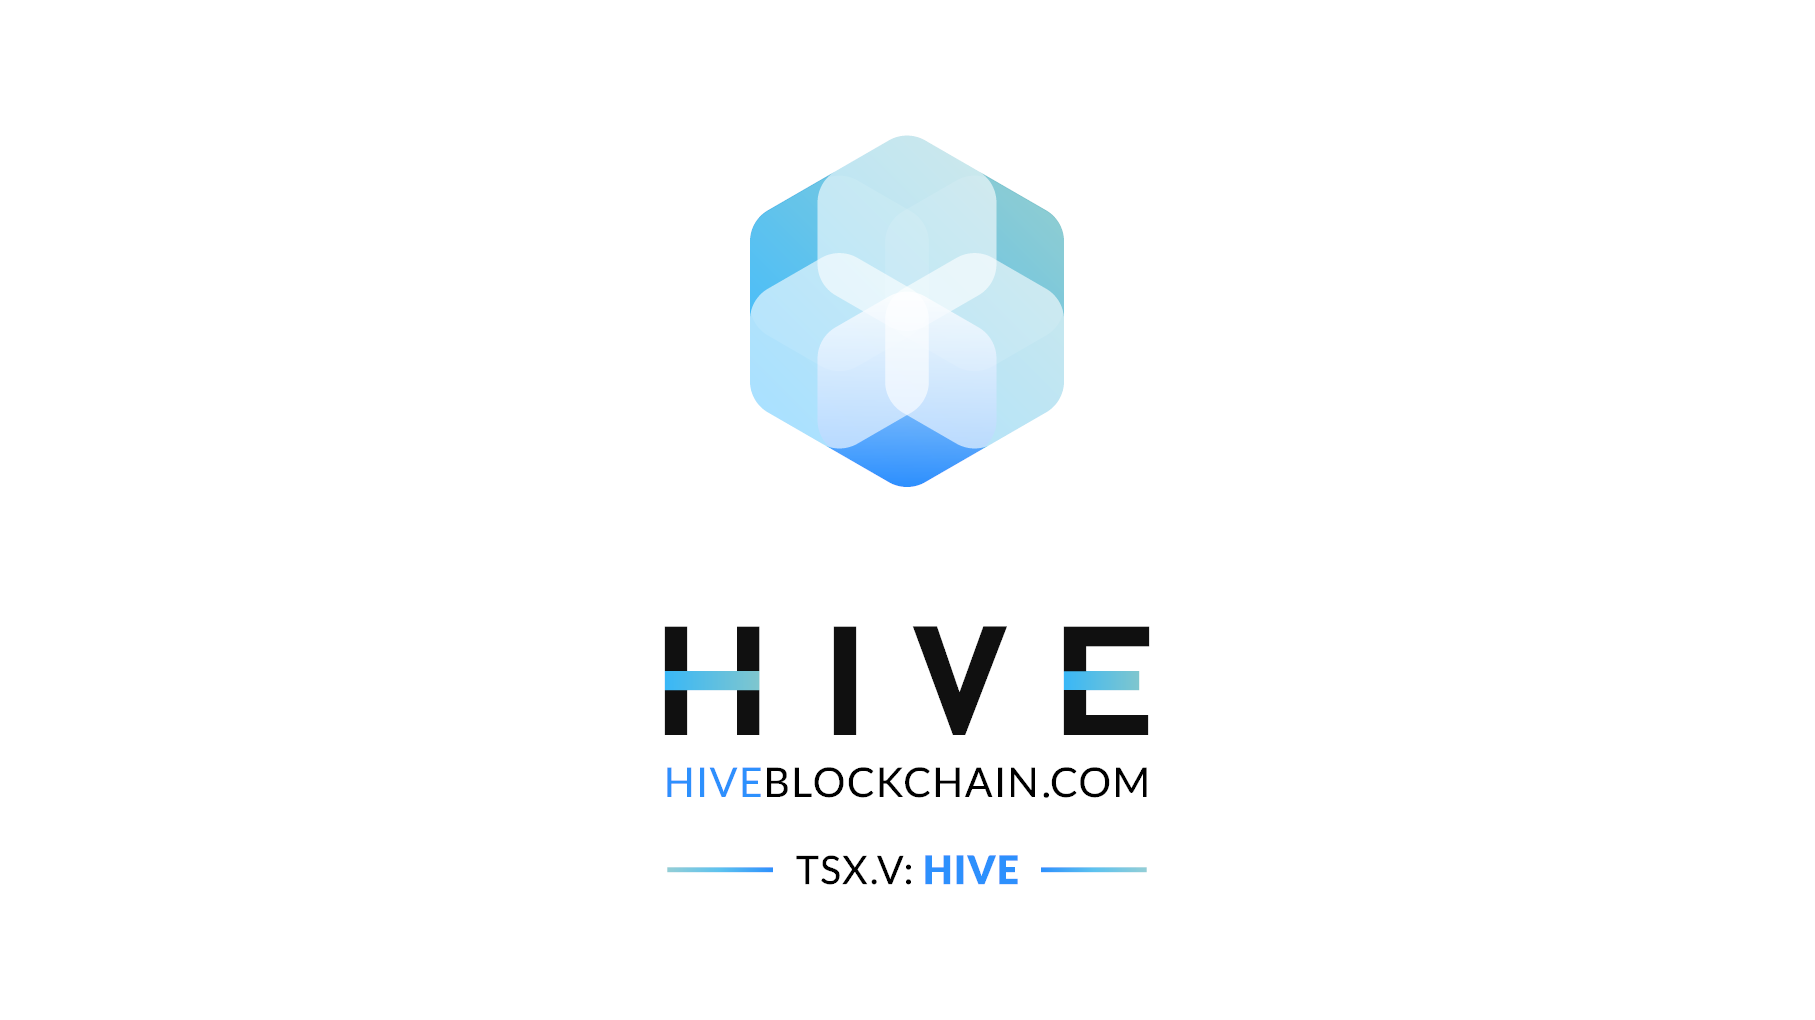 HIVE Blockchain Confirms the Acquisition of a 50 MW Data Centre With The Signing Of Definitive Agreement With GPU.ONE